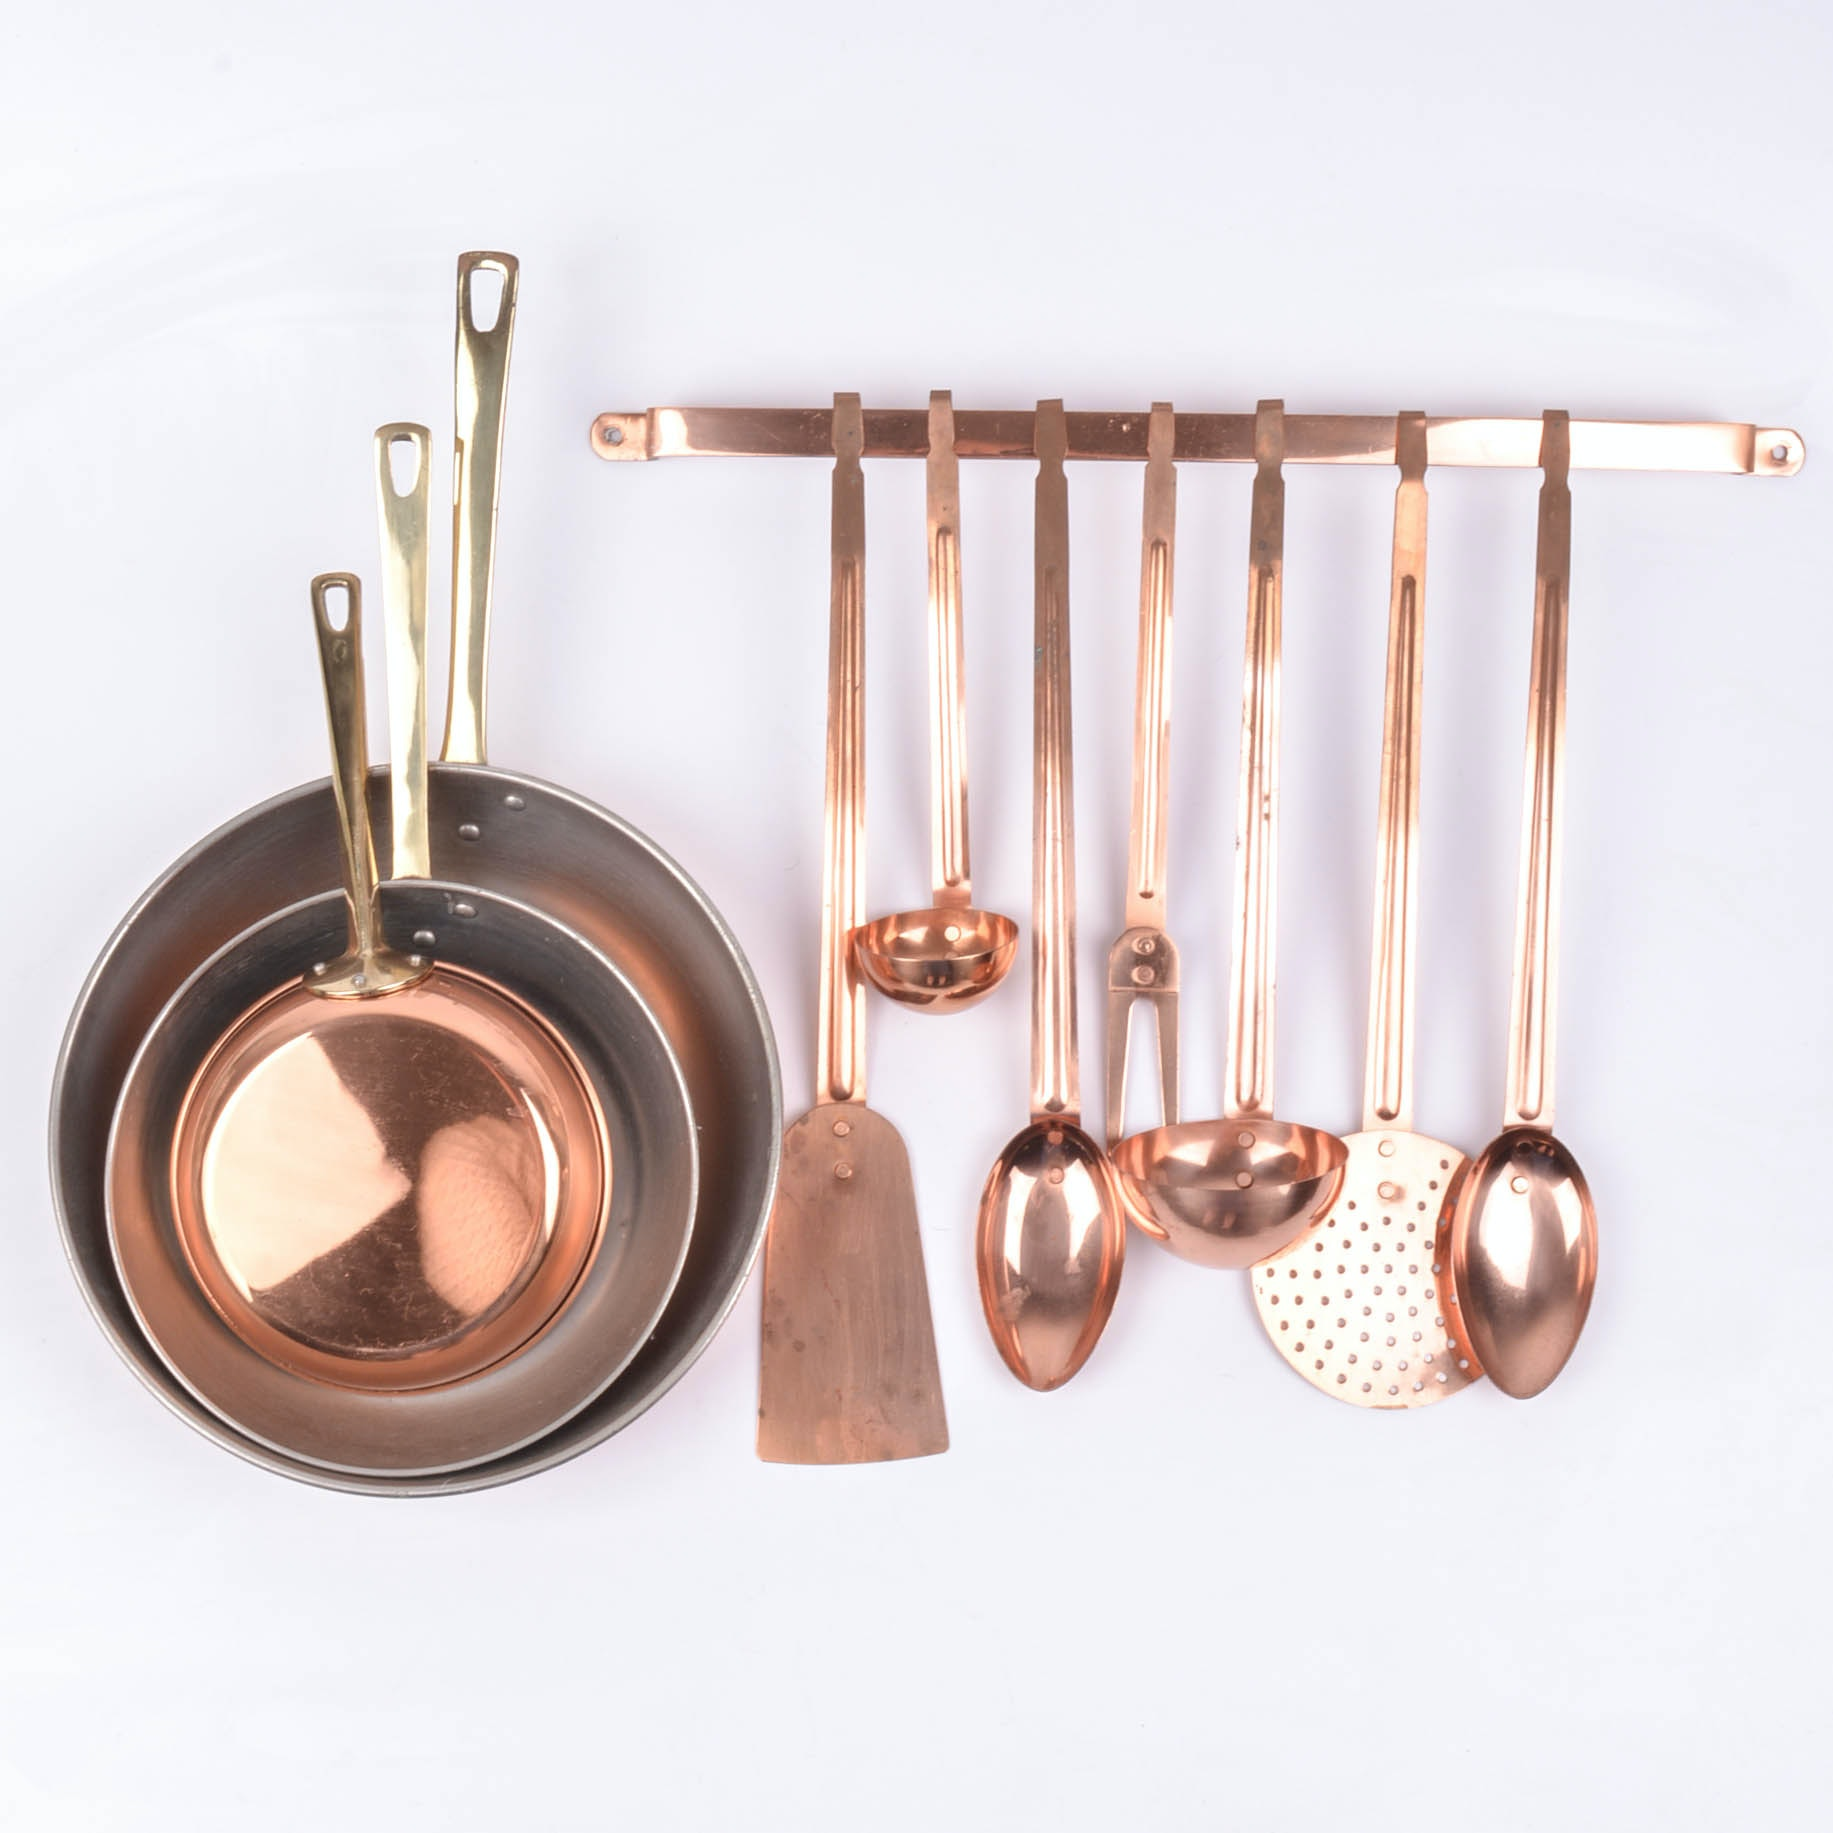 Collection of Copper Kitchenware